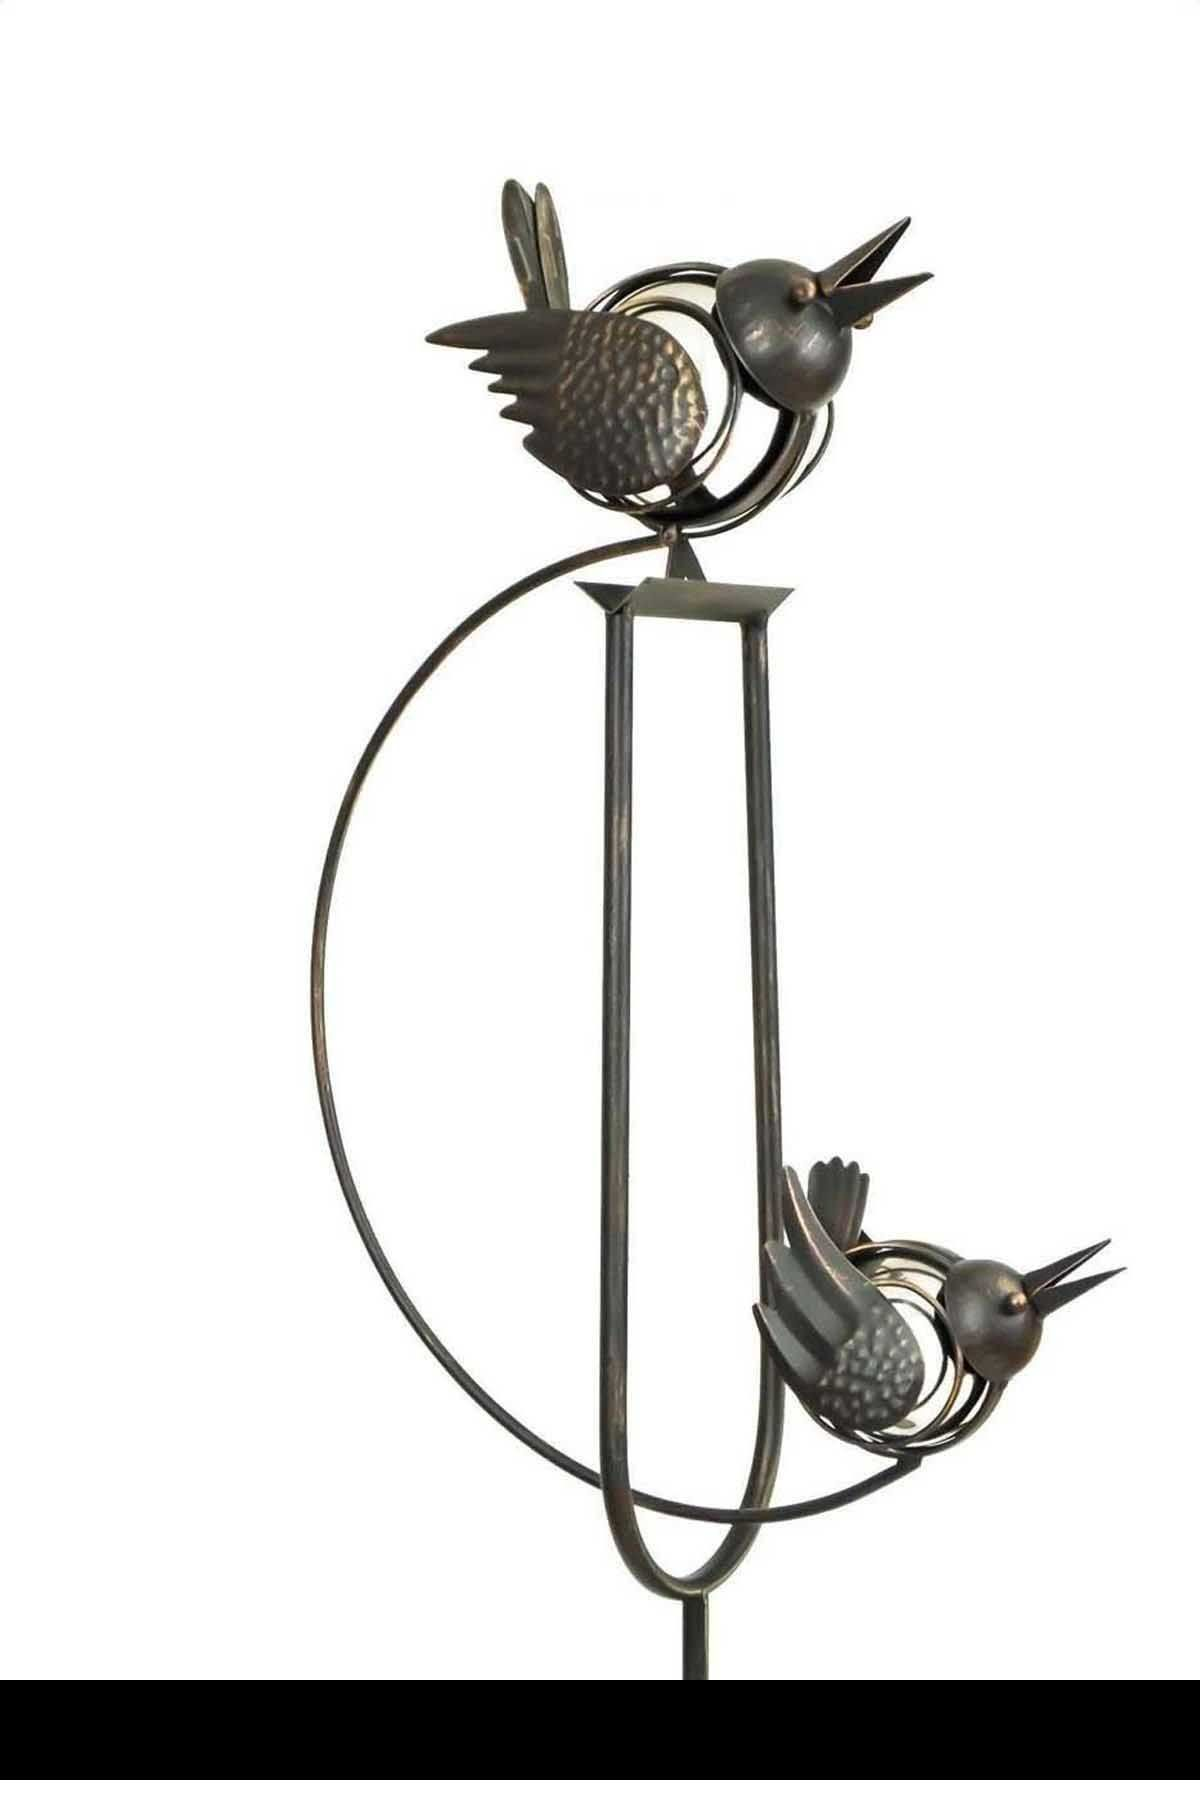 Rocking Balancing Big Love Birds Metal Garden Wind Spinner